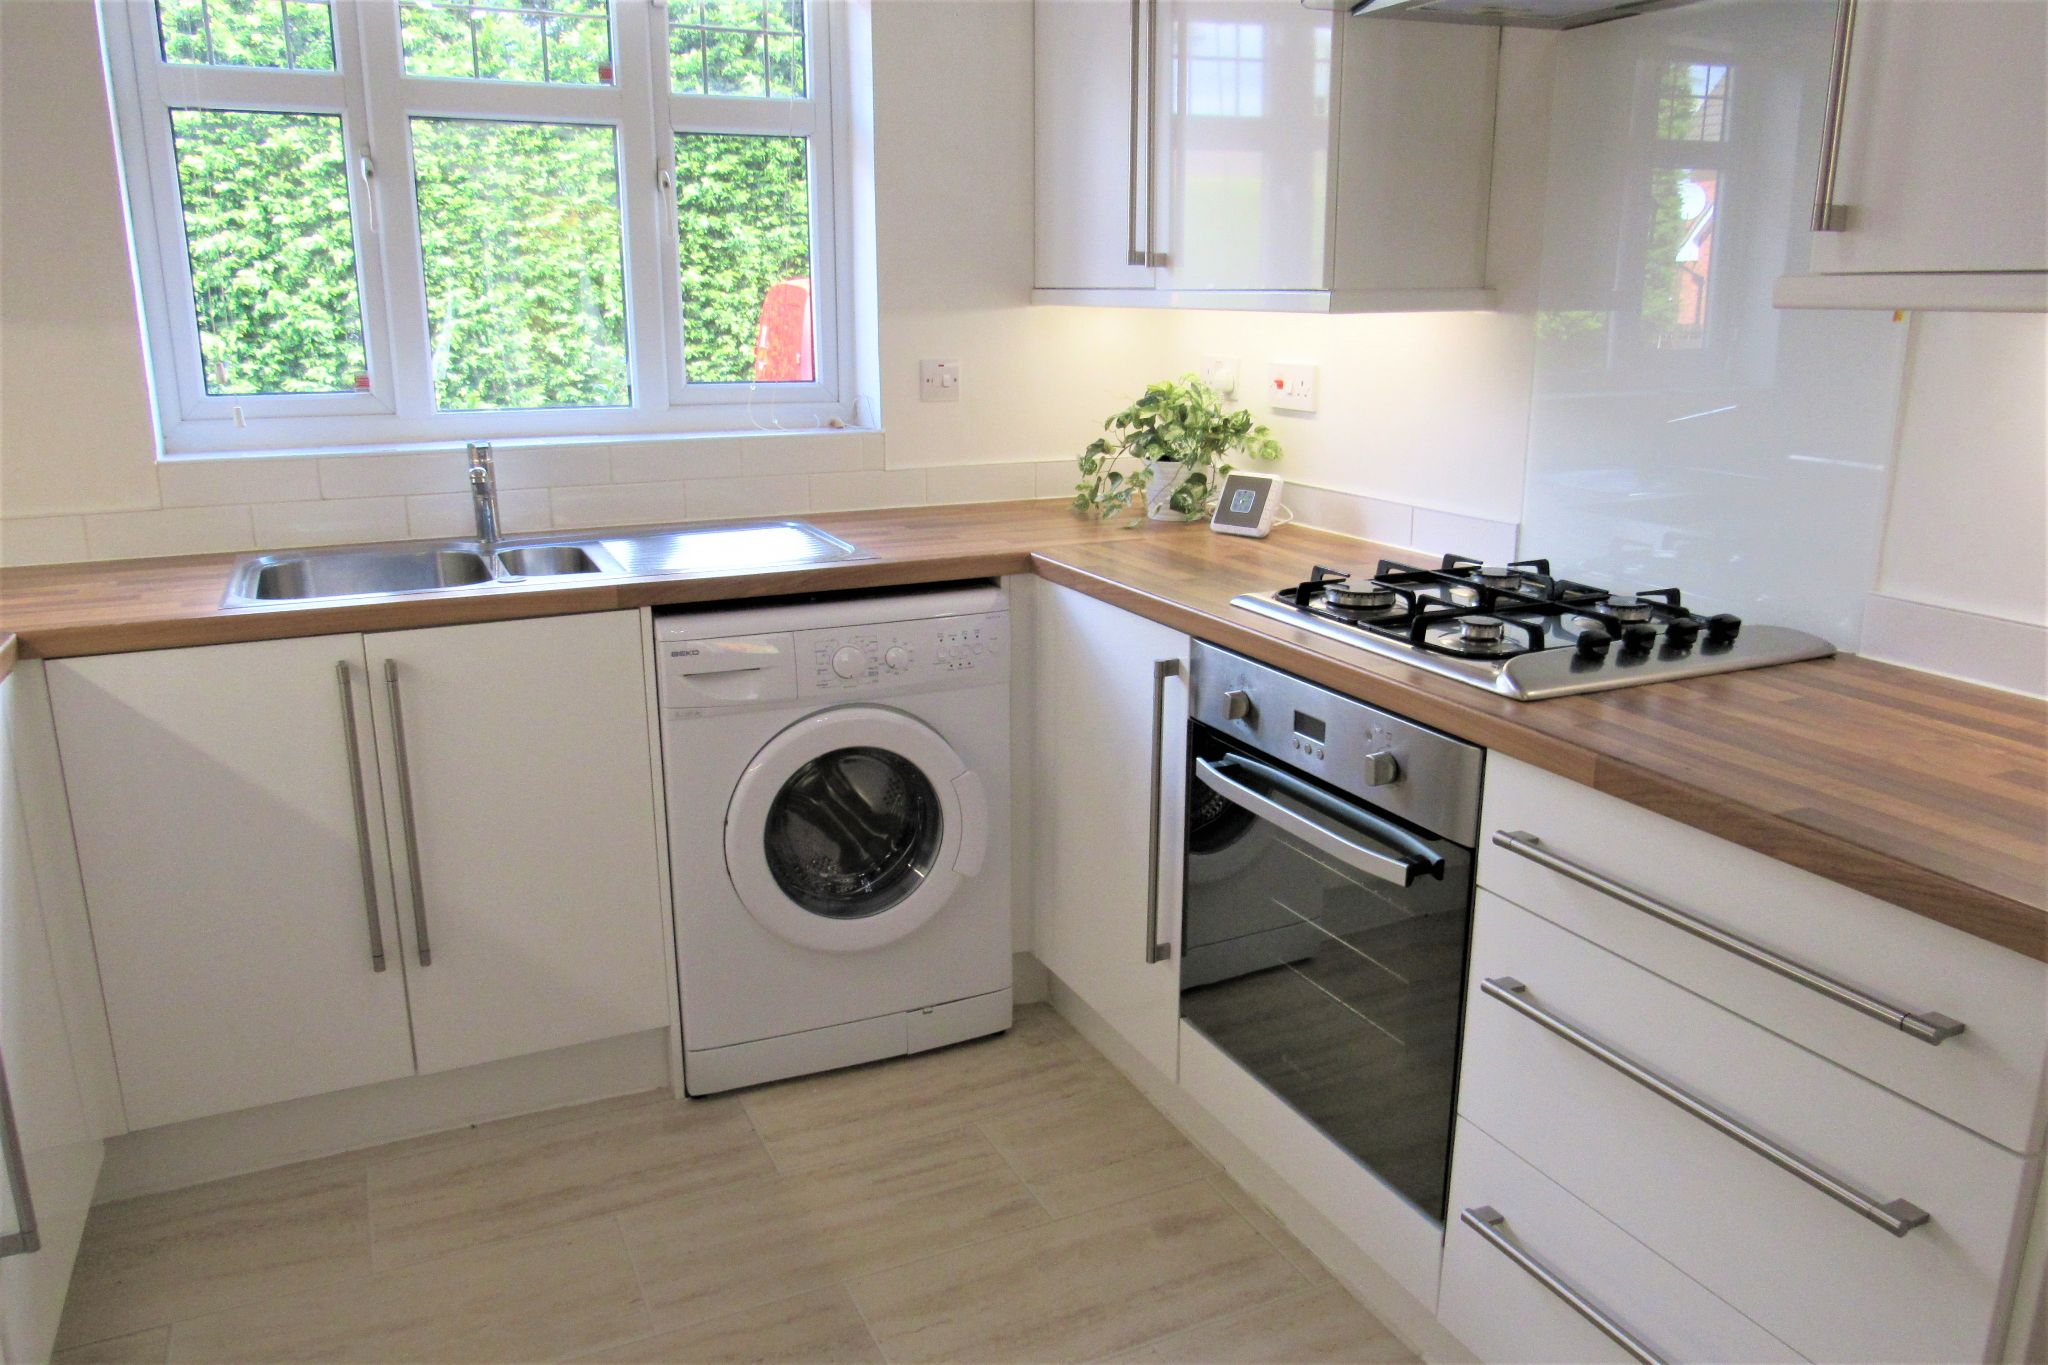 3 bedroom semi-detached house Sale Agreed in Manchester - Photograph 34.